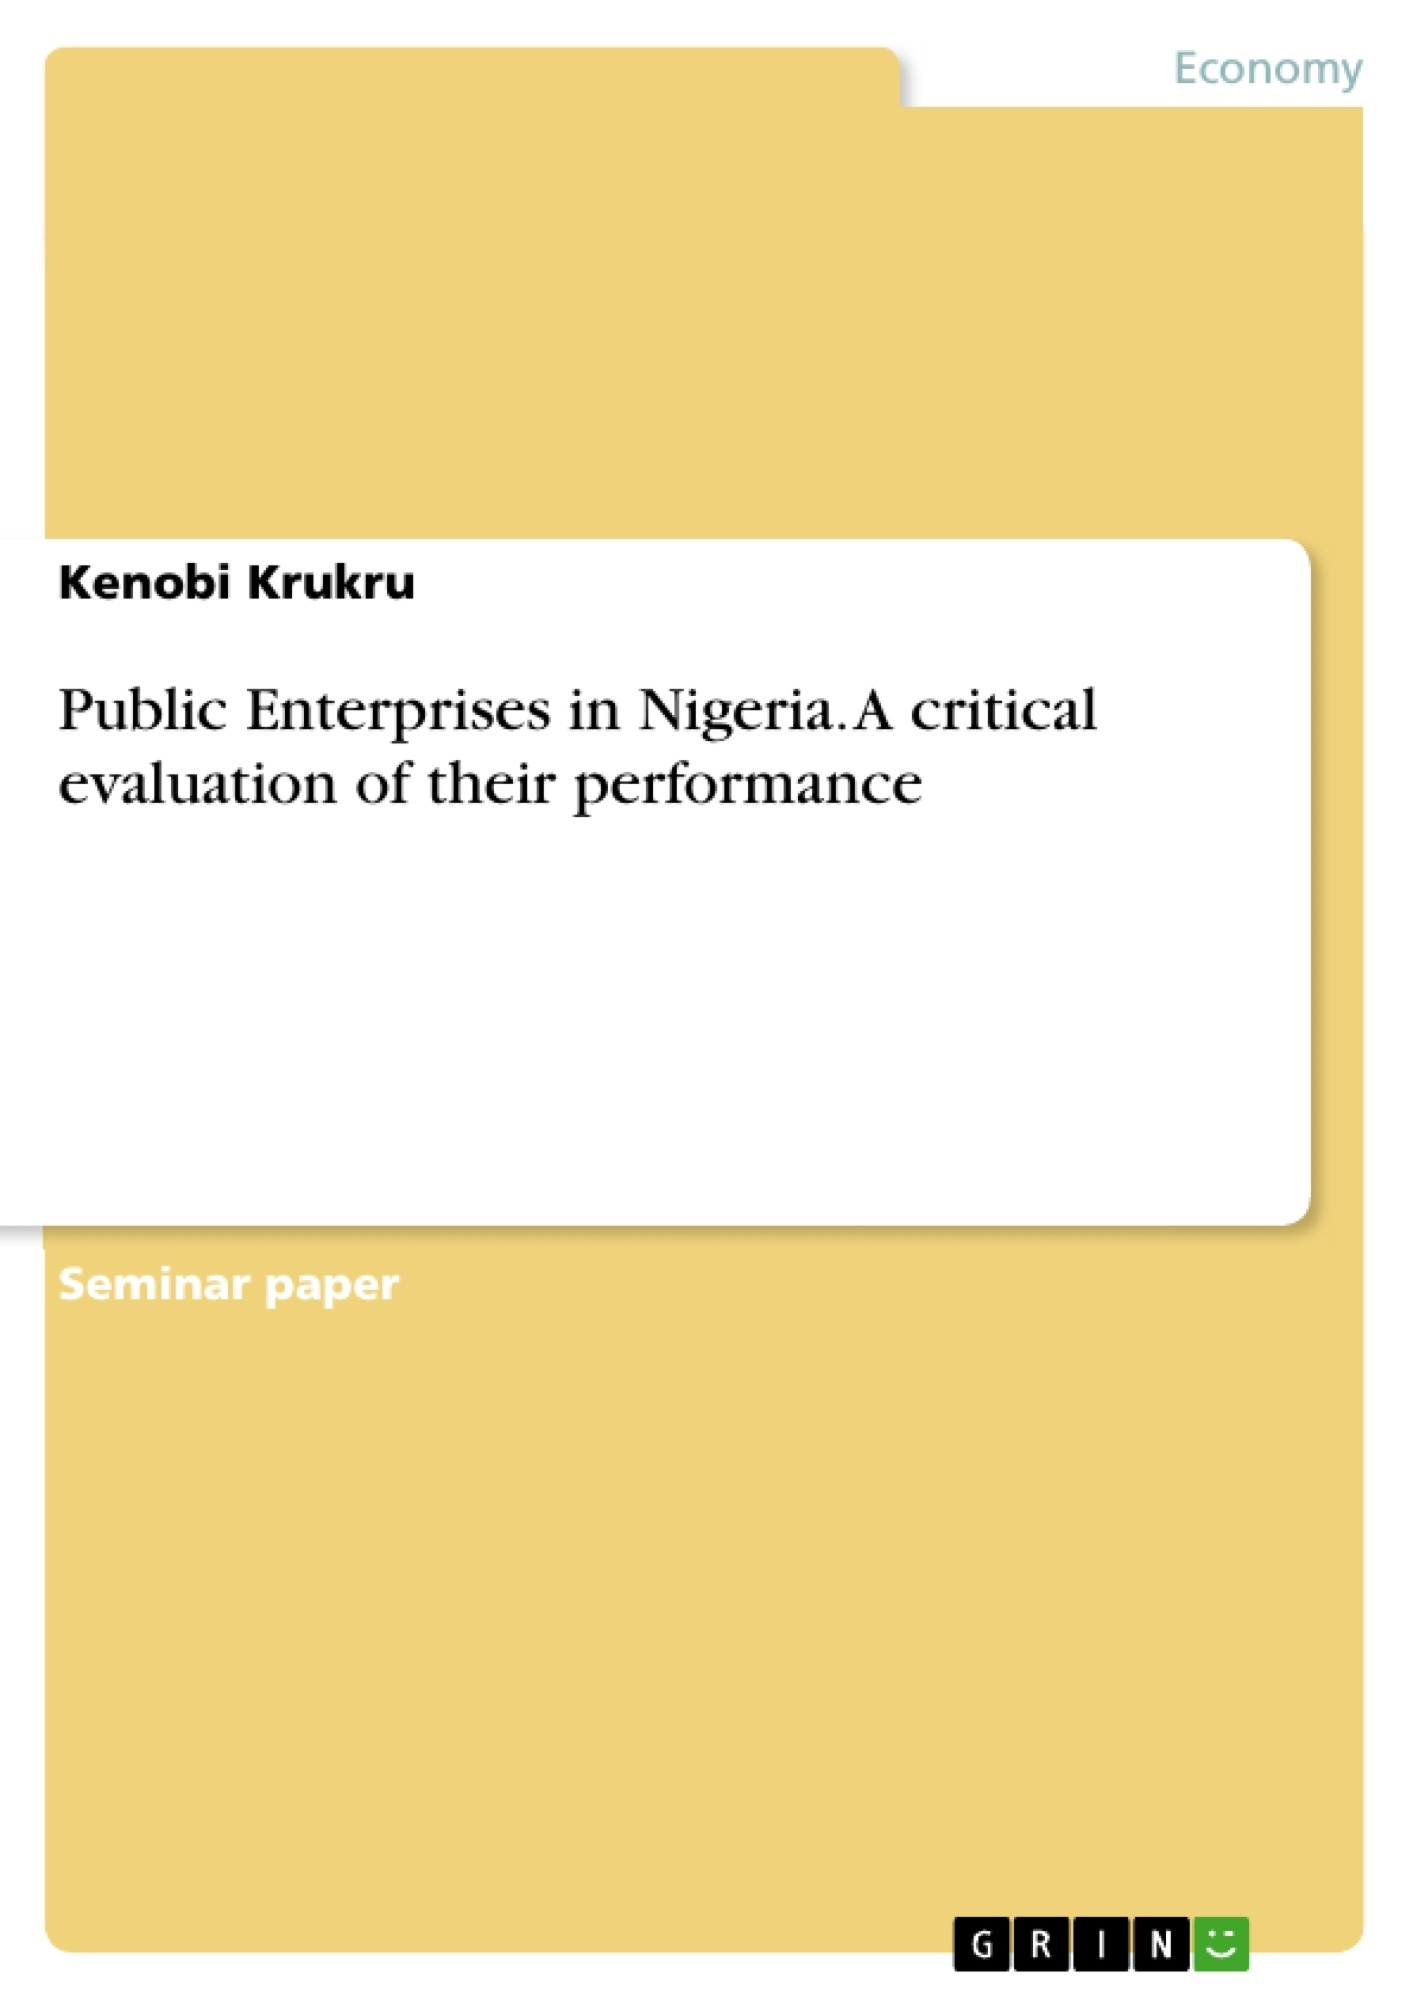 GRIN - Public Enterprises in Nigeria  A critical evaluation of their  performance